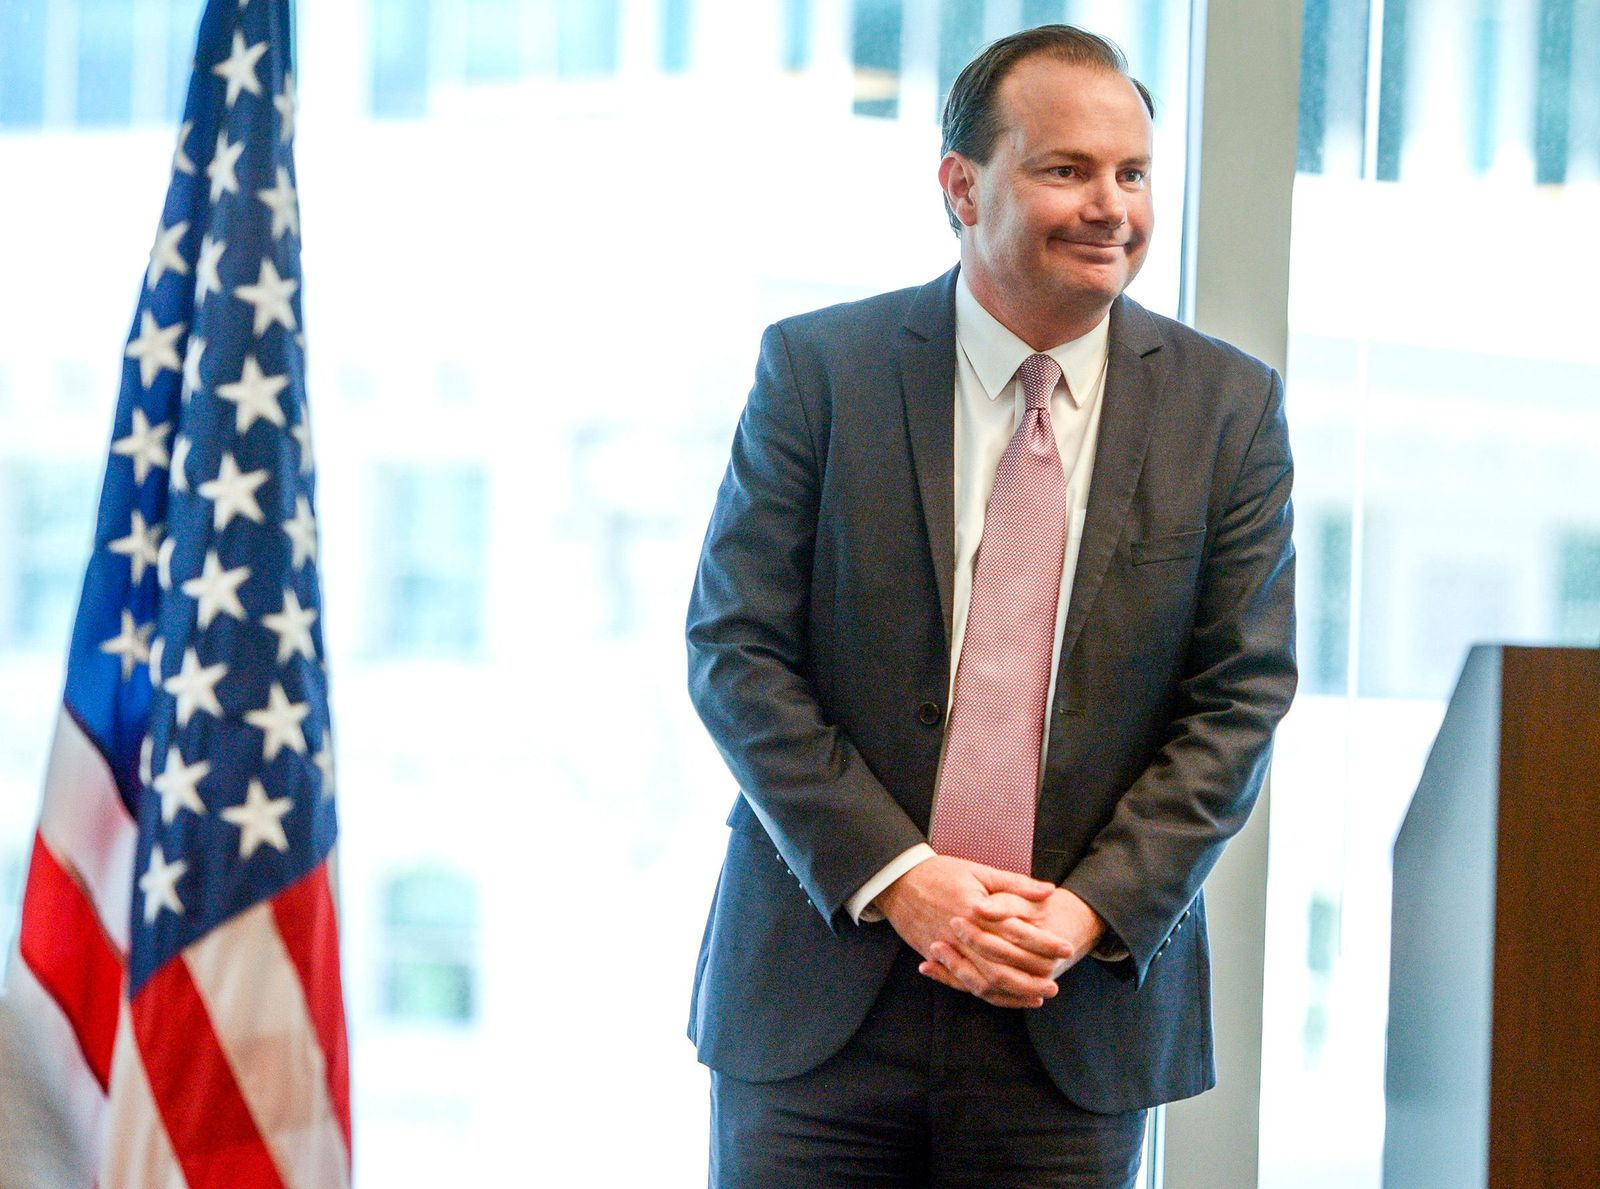 Utah Sen. Mike Lee is one of two U.S. senators who have stalled a fundraising bill for 9/11 first responders. (Leah Hogsten/The Salt Lake Tribune via AP)